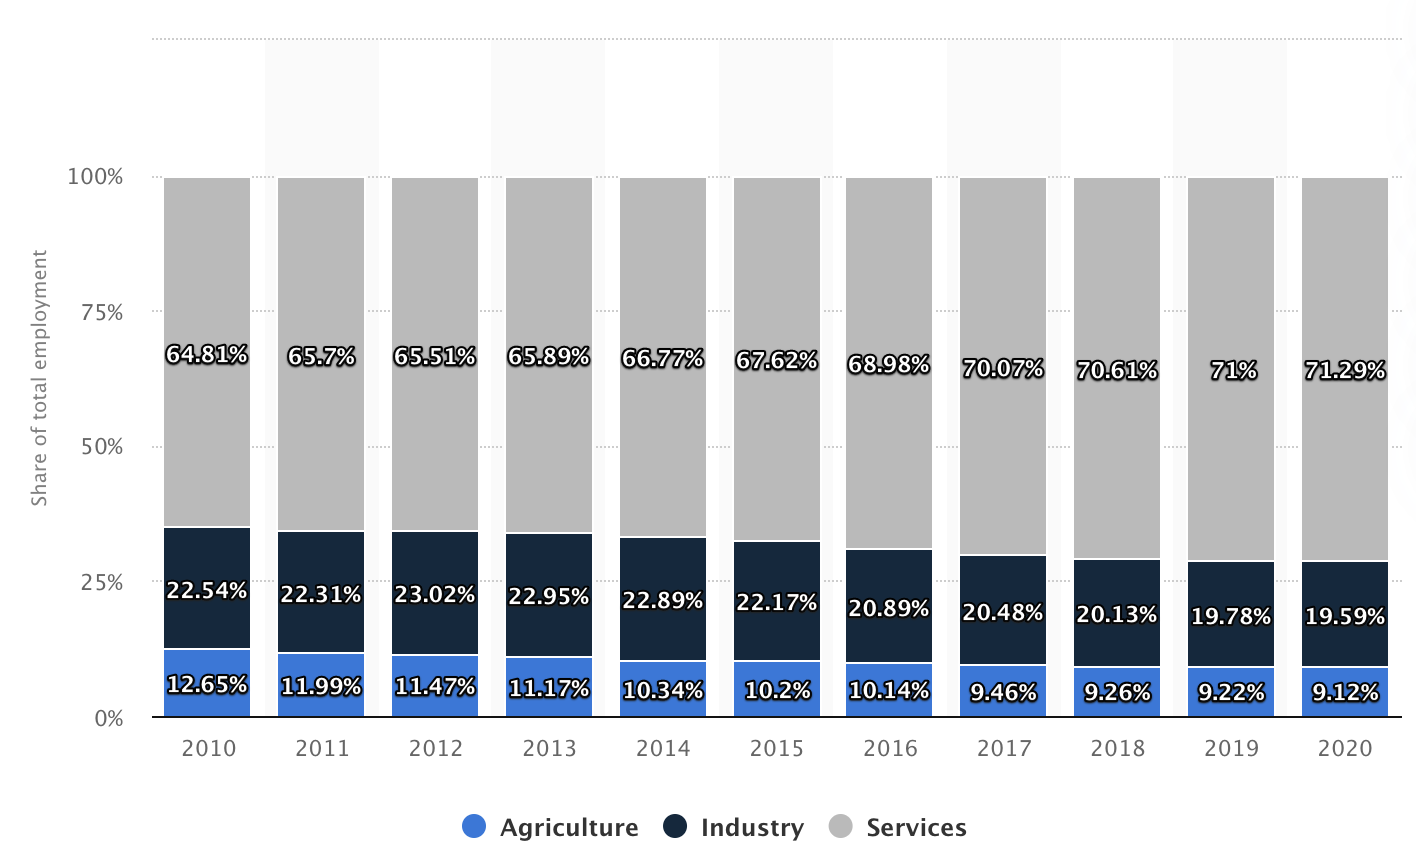 Brazil: Distribution of employment by economic sector from 2010 to 2020